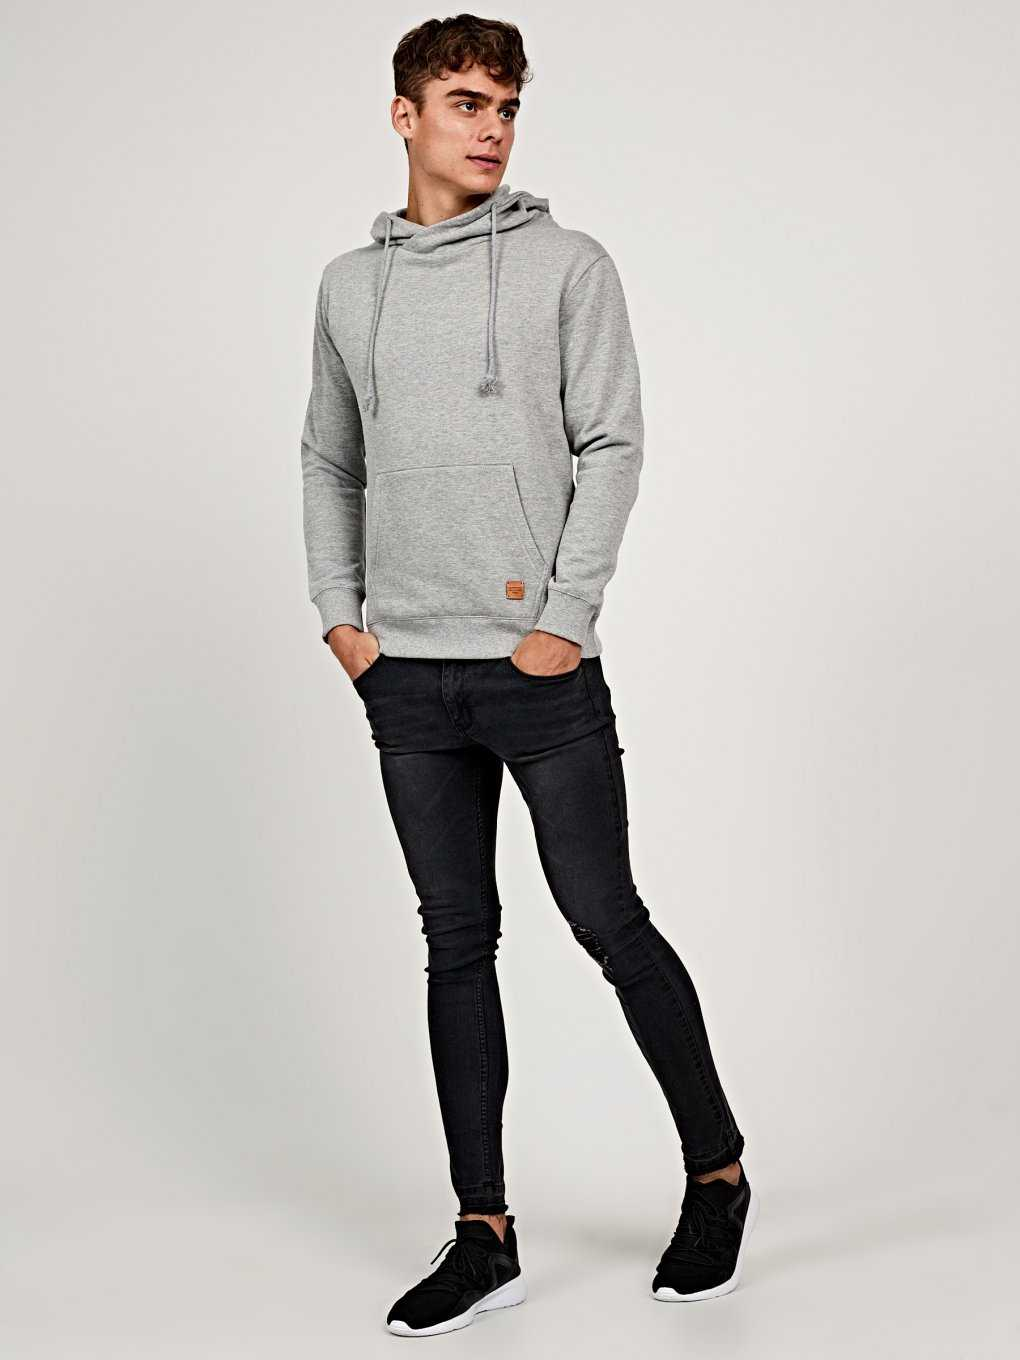 Hoodie with kangaroo pocket